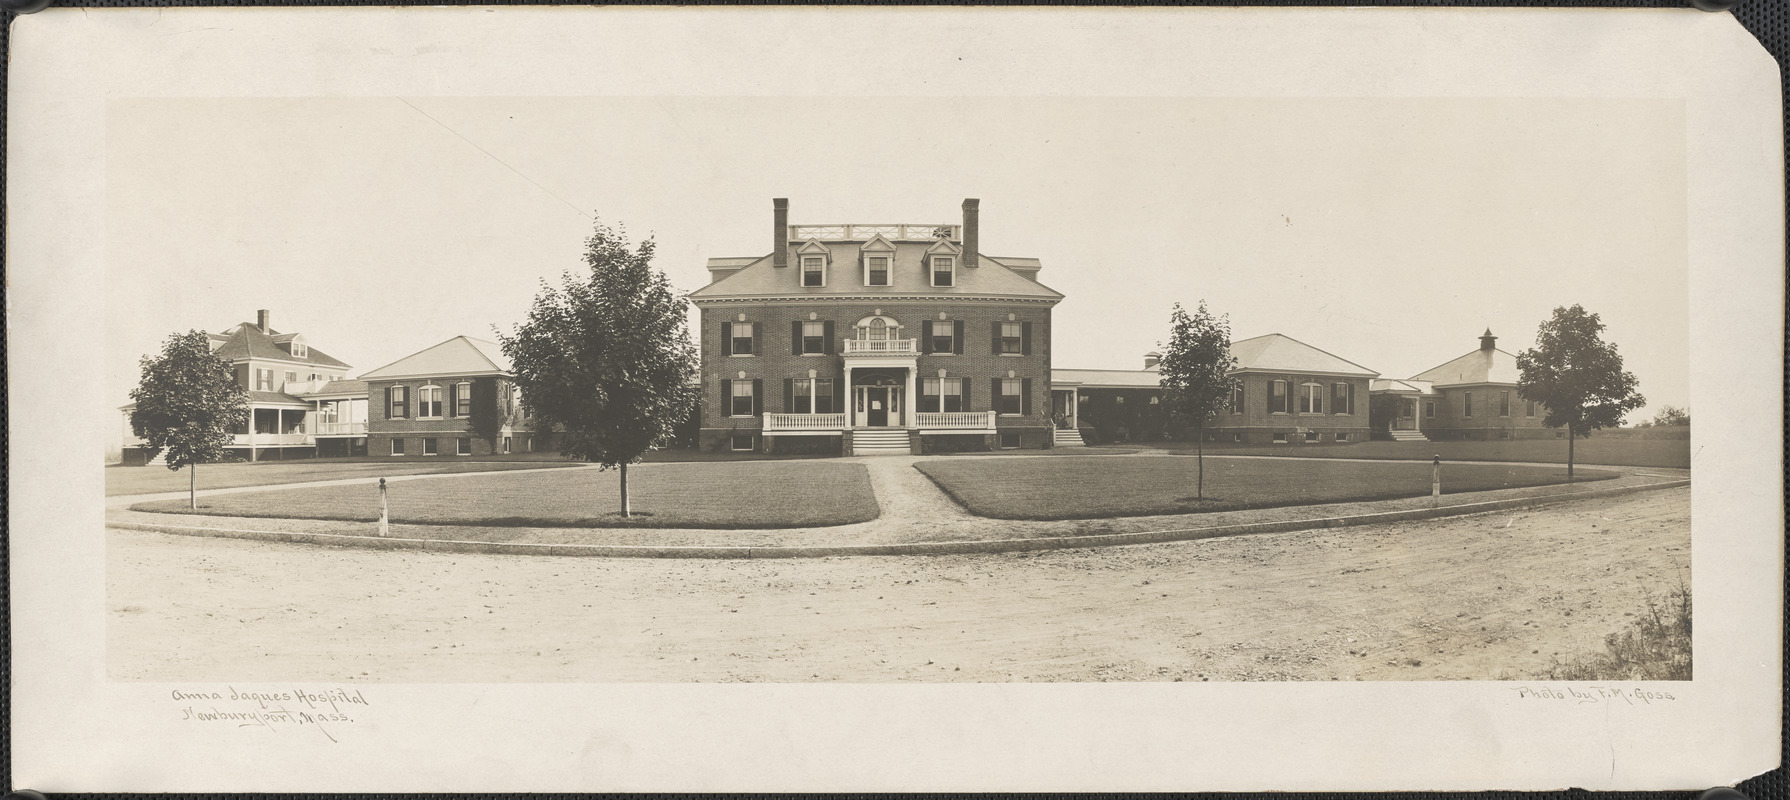 Anna Jaques Hospital, Newburyport, Mass.